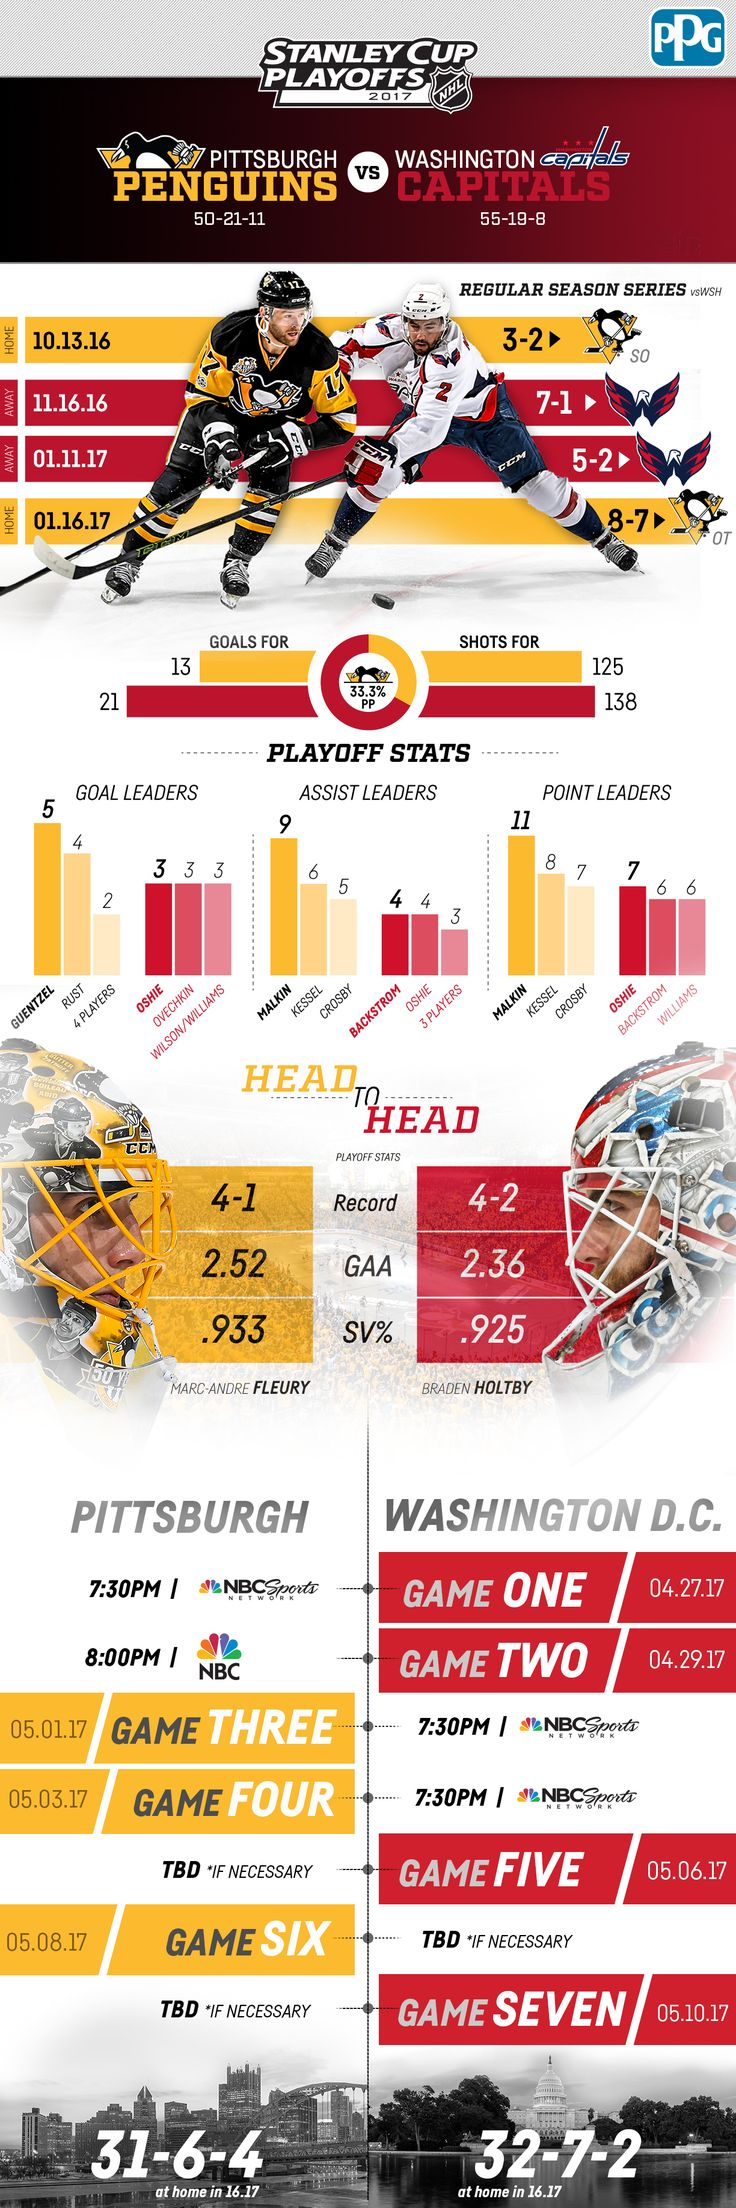 Here's everything you need to know about the Penguins and Capitals Round 2 series in the 2017 Stanley Cup Playoffs.